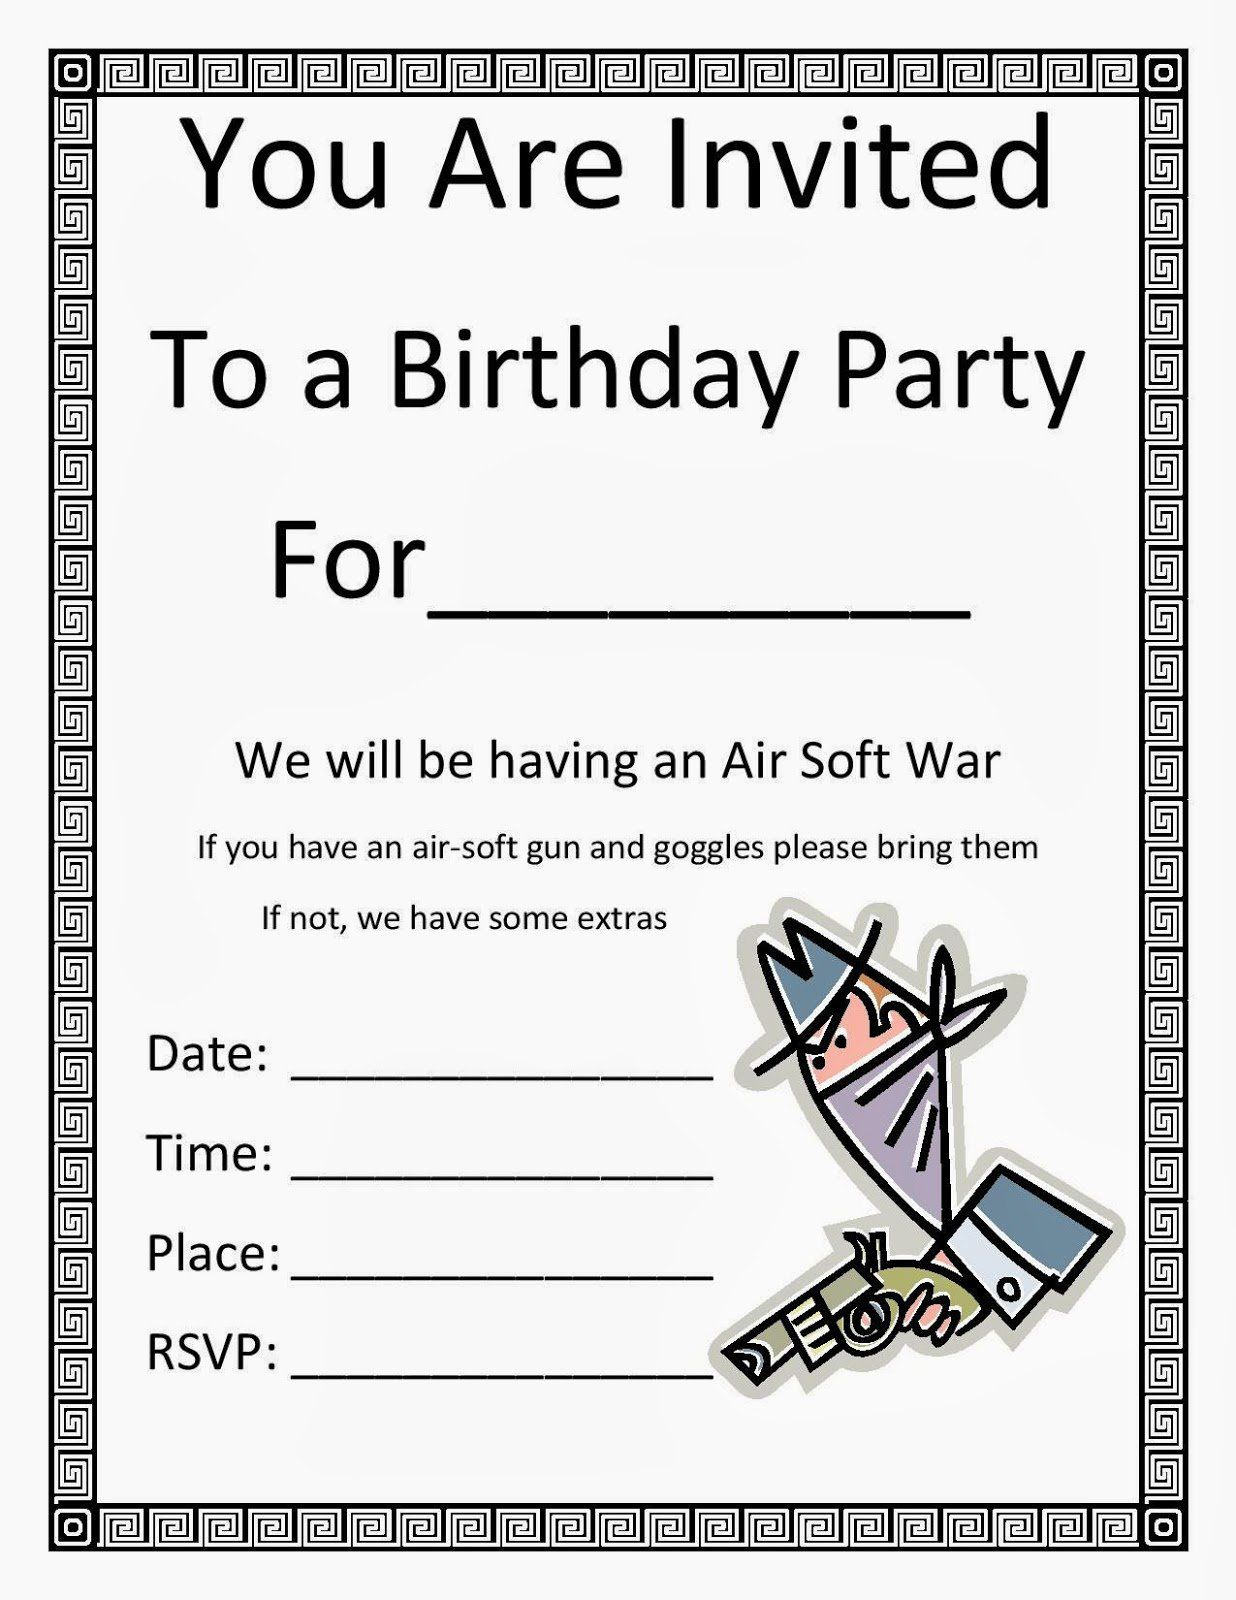 birthday party invitation templates microsoft word  Invitation